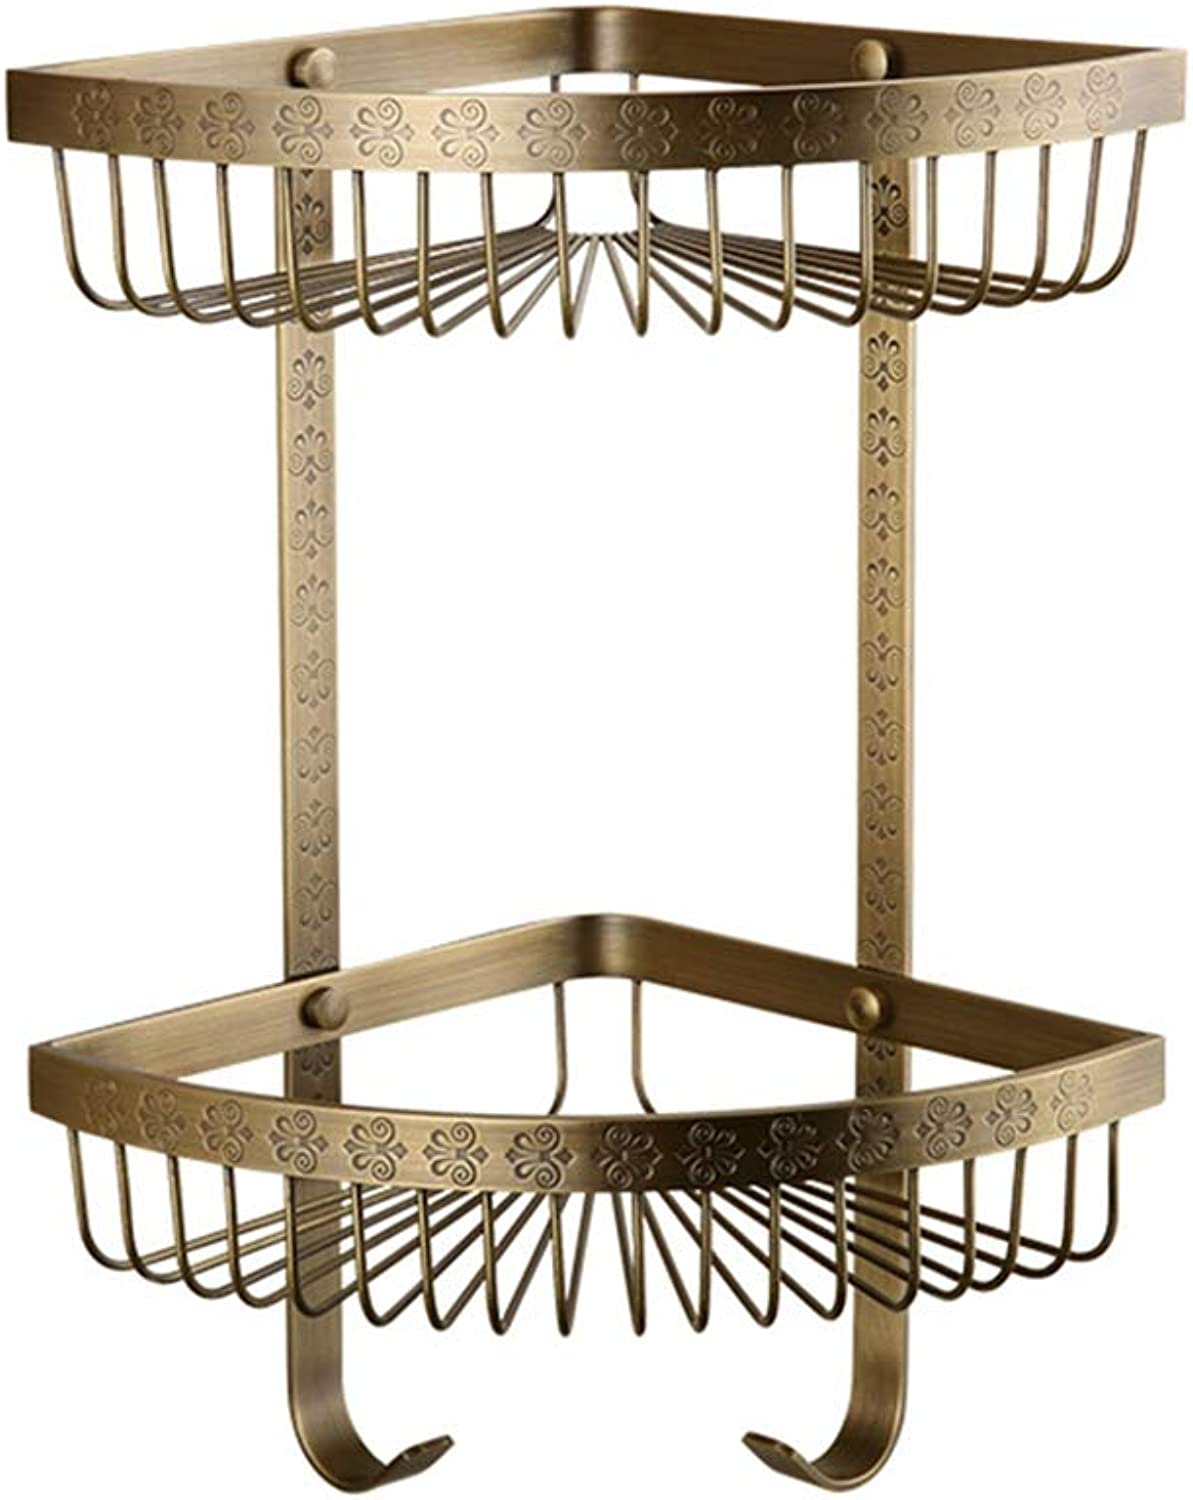 LUDSUY All Copper Antique Carved Antique Double Triangle Basket Triangle Basket Racks Bathroom Accessories Copper Basket